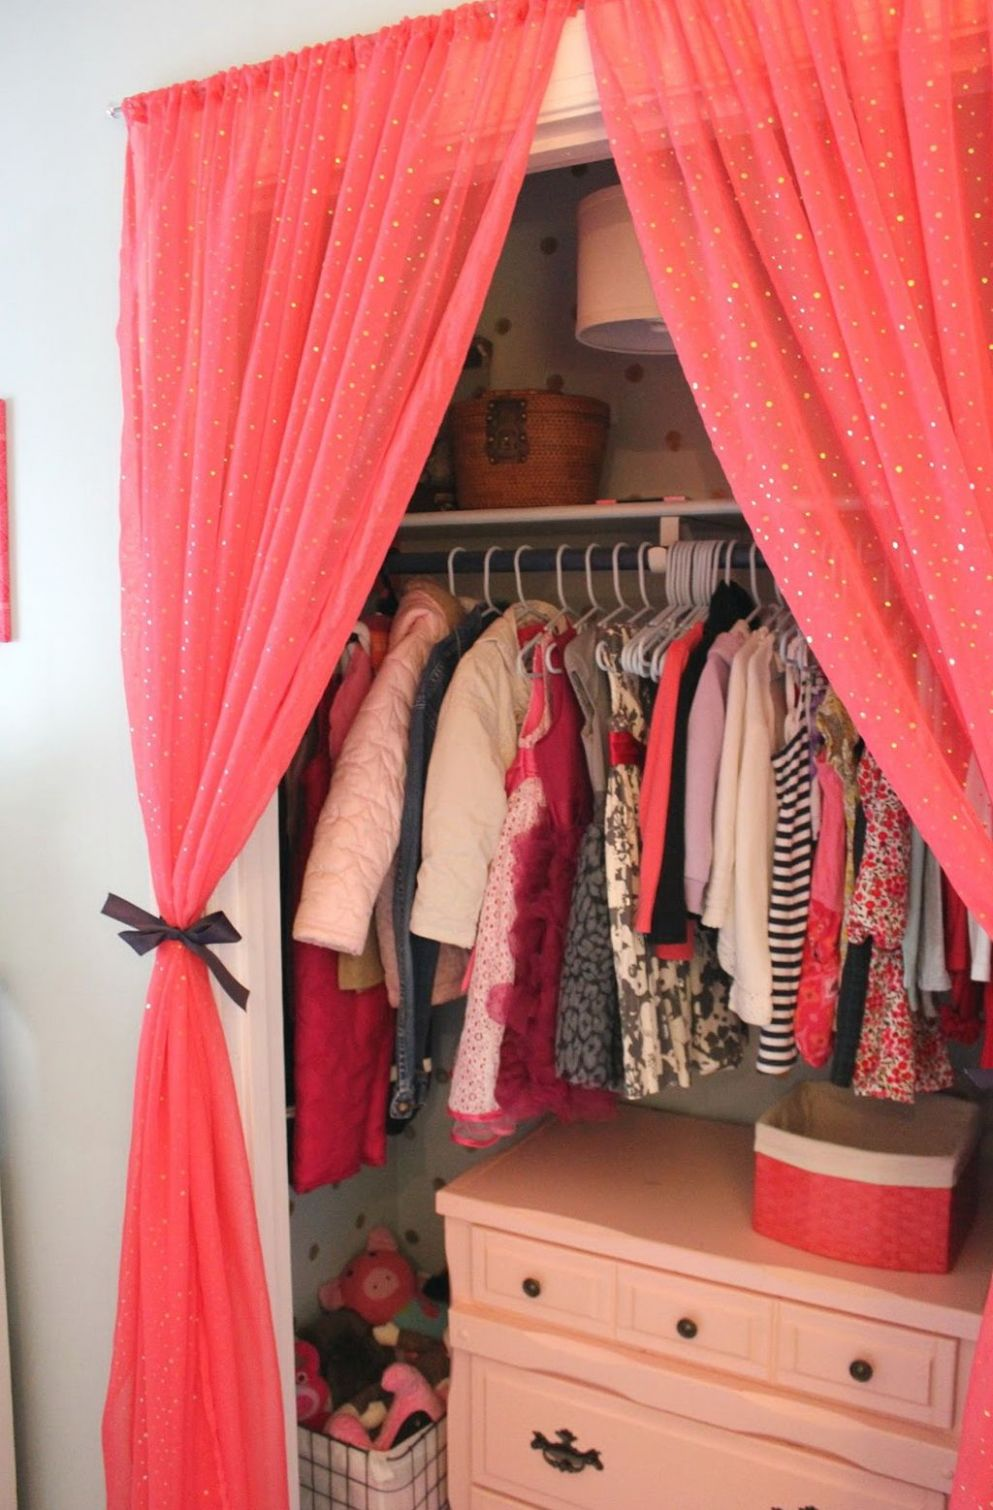 Best Closet Door Ideas to Spruce Up Your Room (With images ...